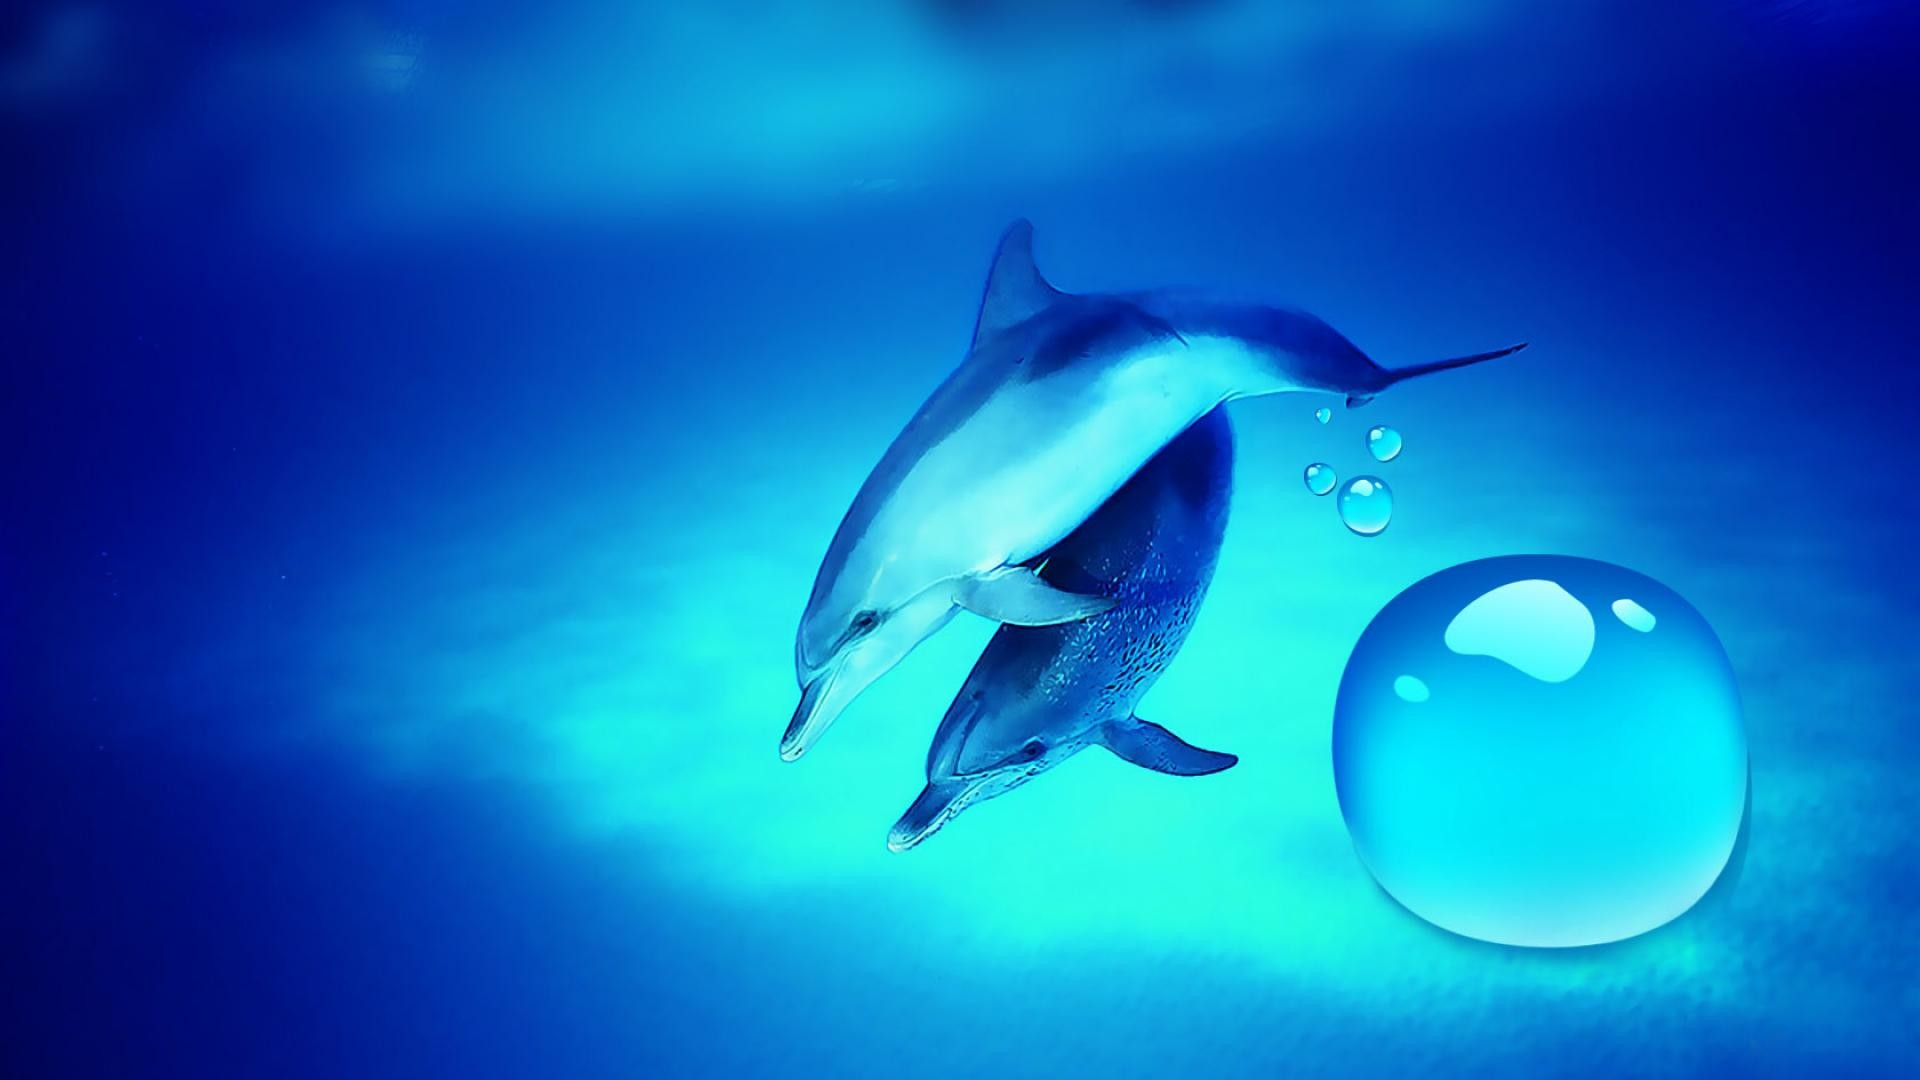 Dolphin wallpapers 69 images 1920x1200 best dolphin wallpapers and backgrounds voltagebd Gallery